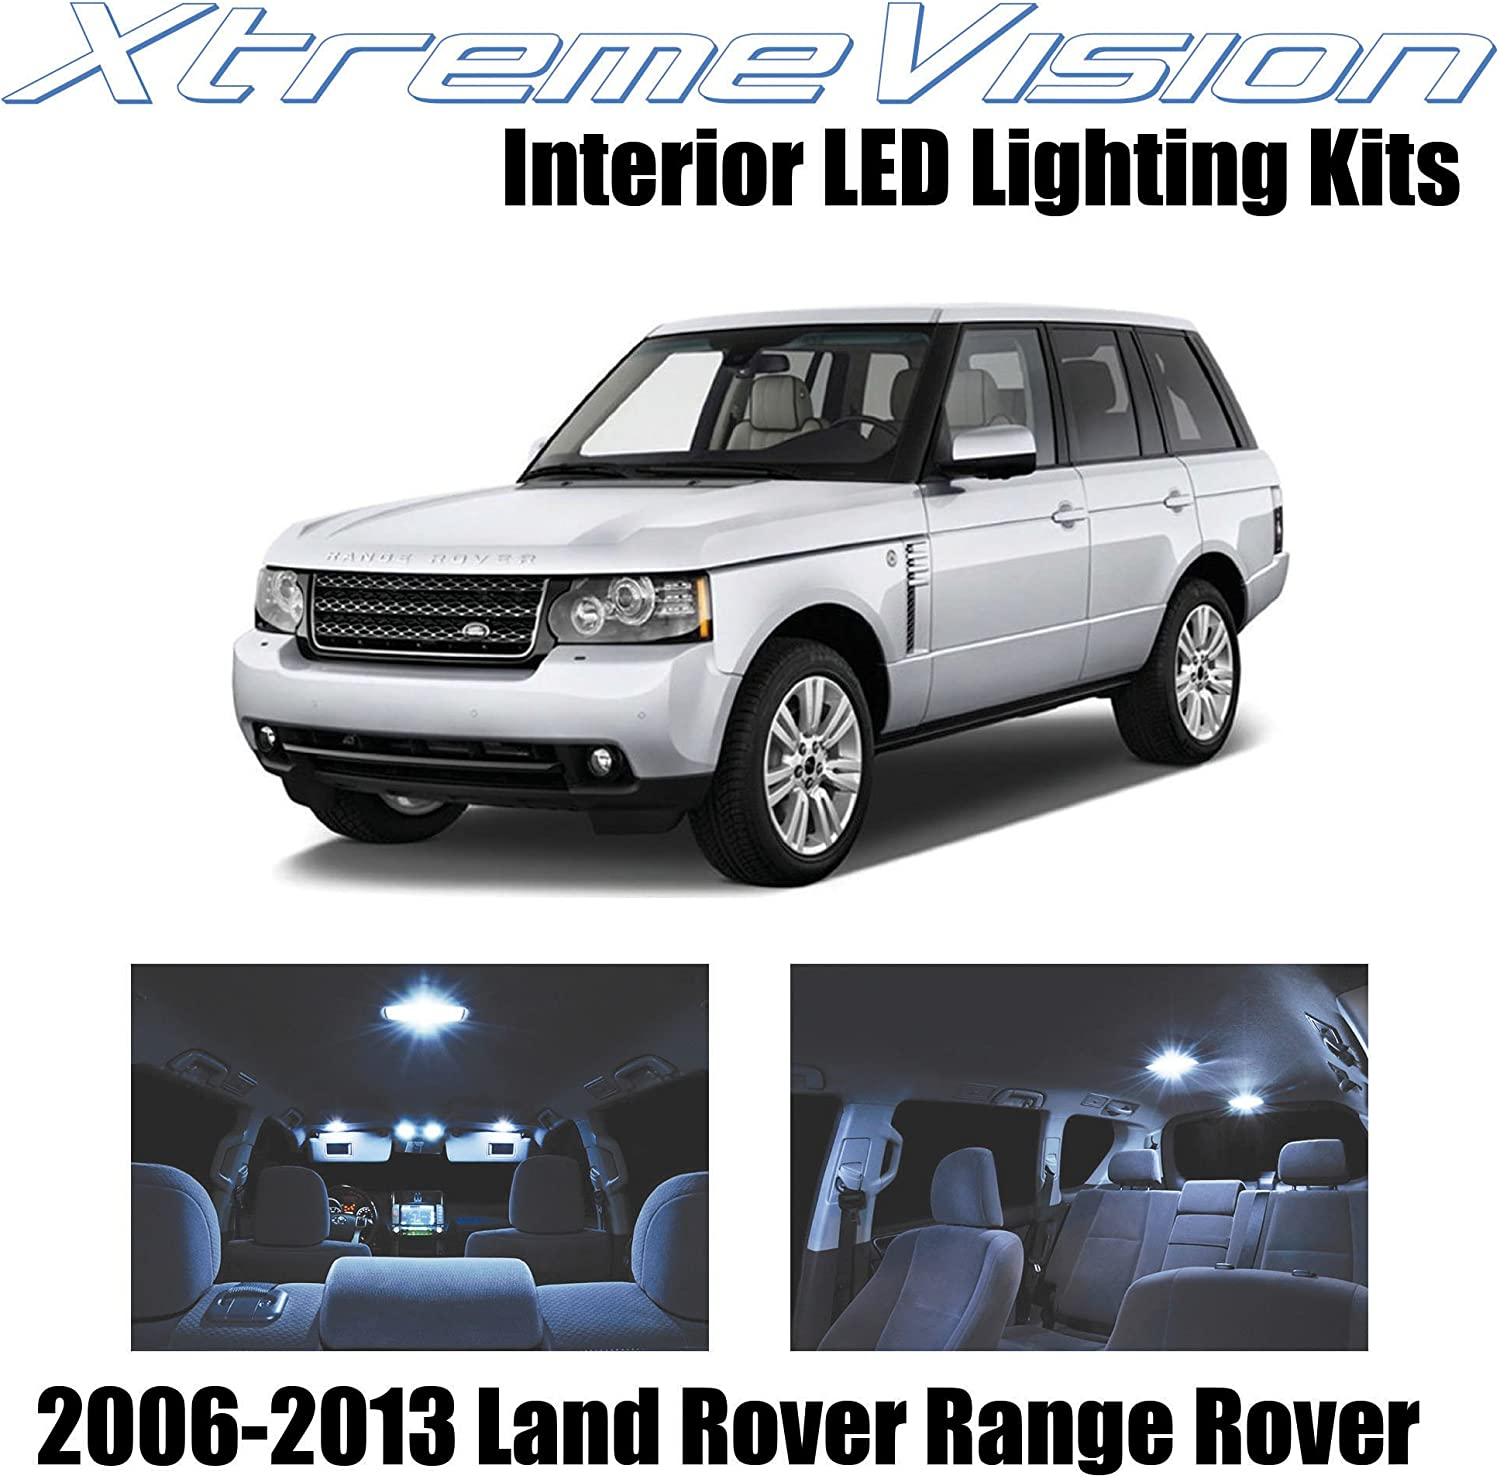 Xtremevision Interior LED for Land Rover Range Rover 2006-2013 (14 Pieces) Cool White Interior LED Kit + Installation Tool